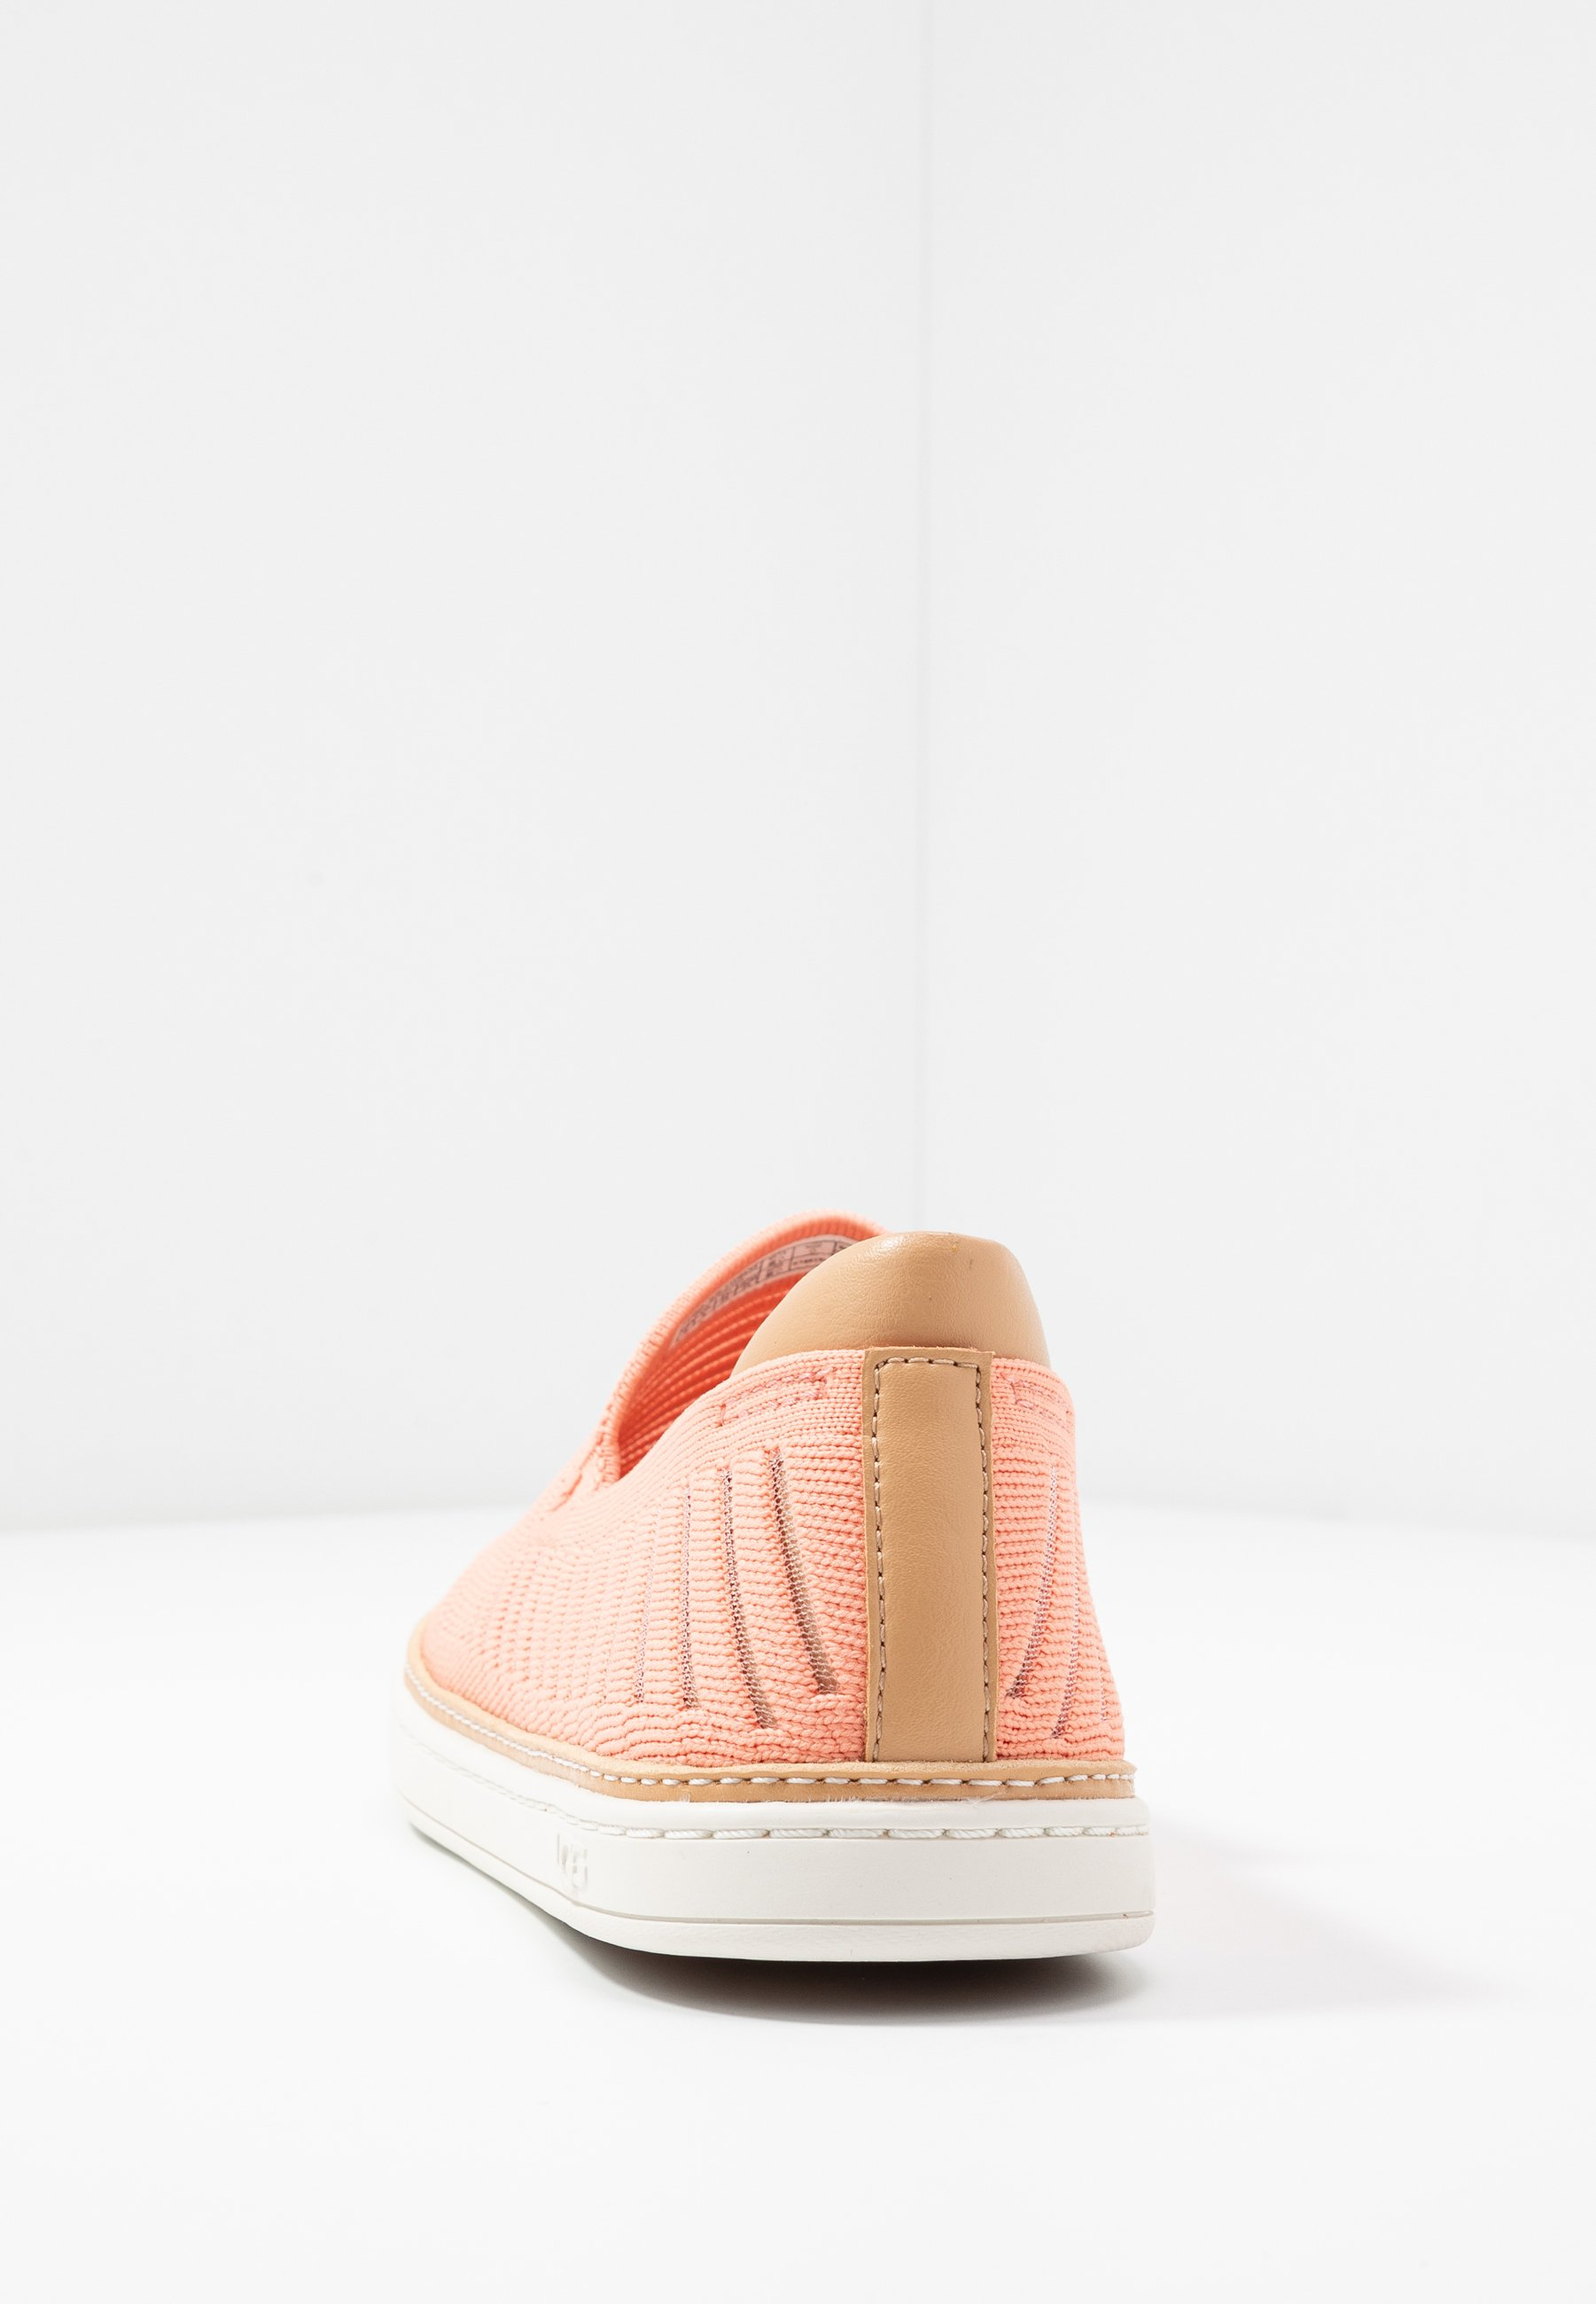 Ugg Sammy Breeze - Slippers Coral